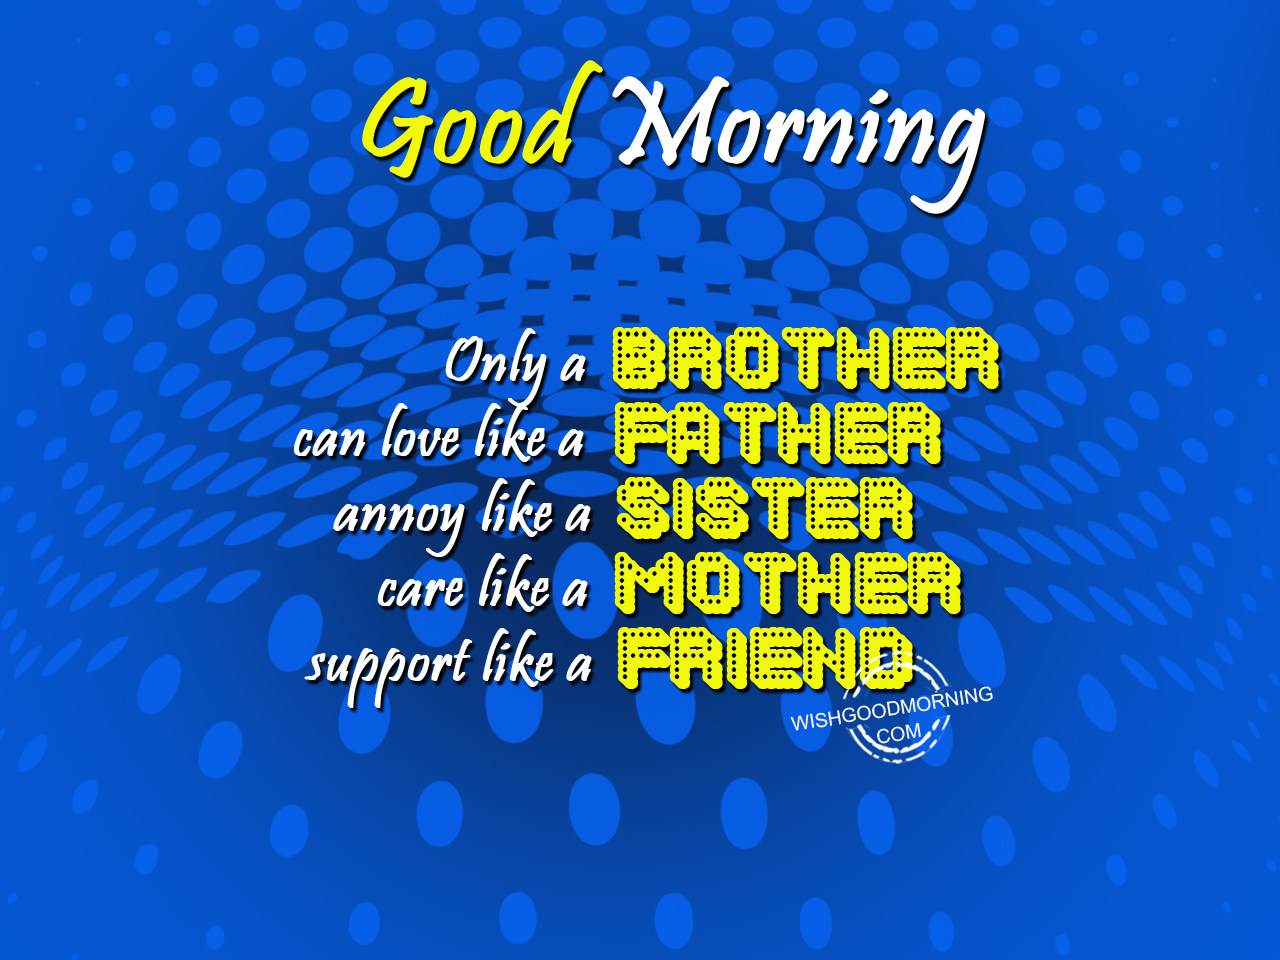 Good Morning Brother : Good morning wishes for brother pictures